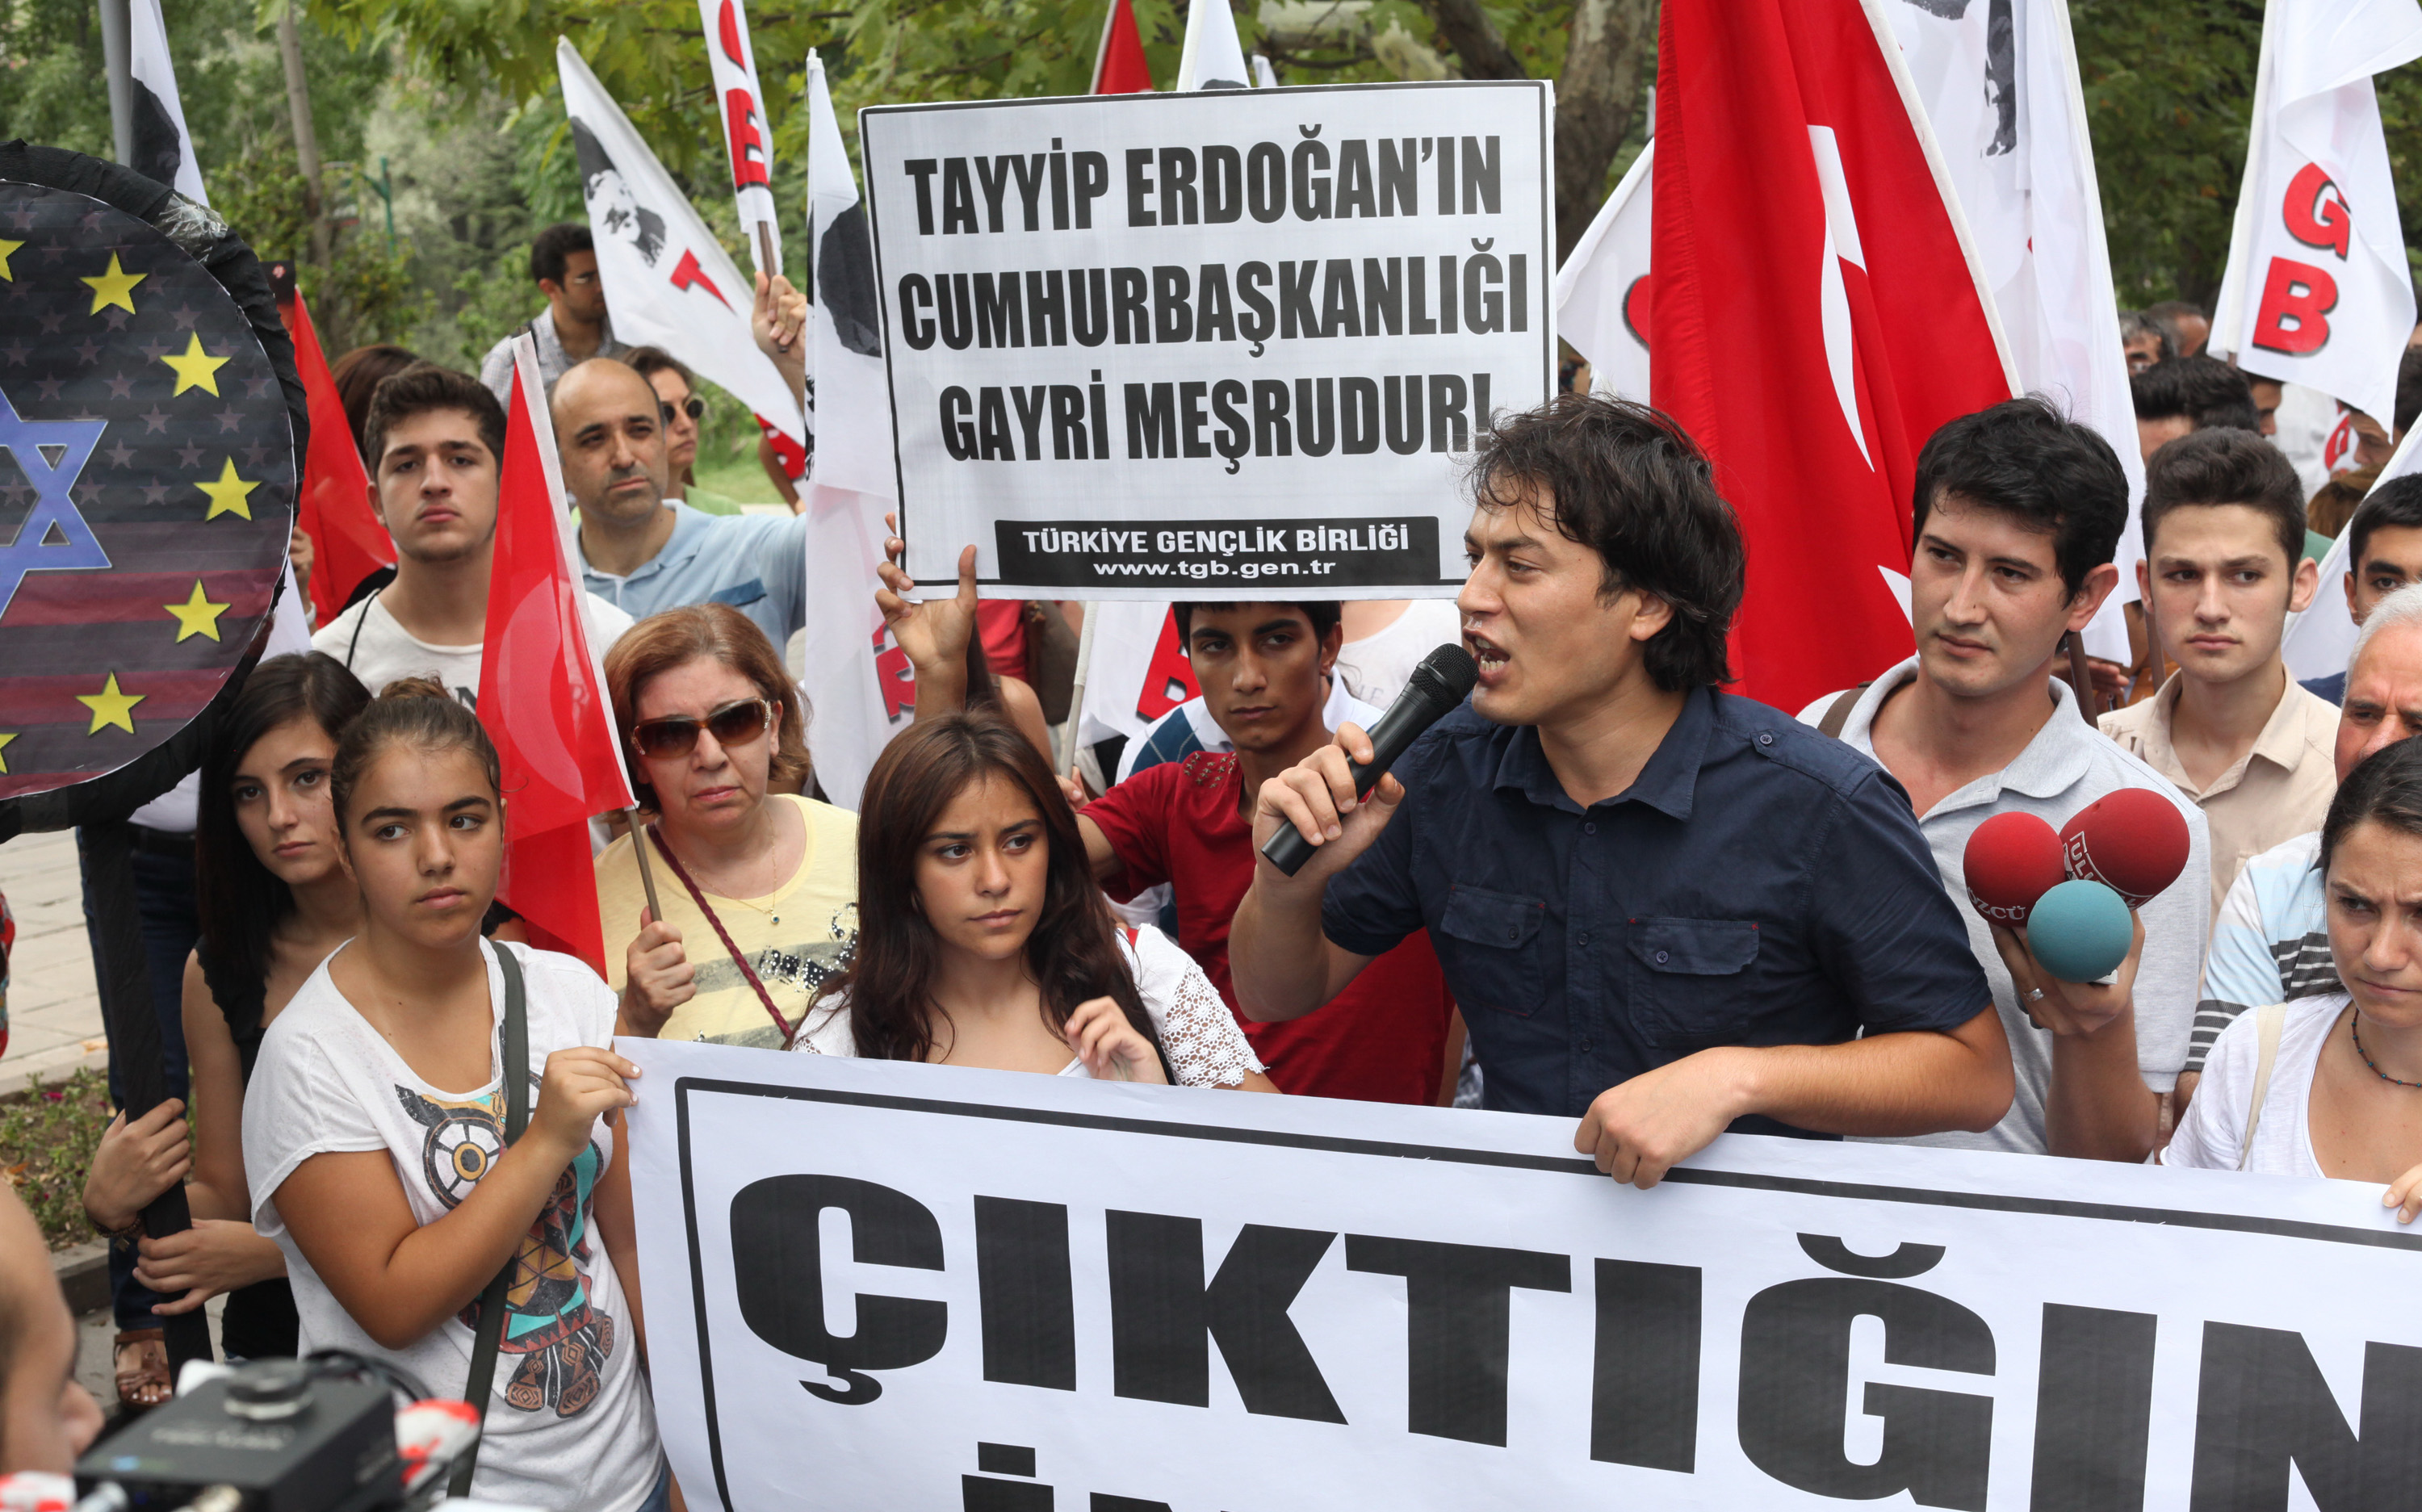 Turkish Youth Union (TGB) protested against Erdogan on August 11, 2014 in Ankara after Turkey's Prime Minister Recep Tayyip Erdogan won the presidential election.